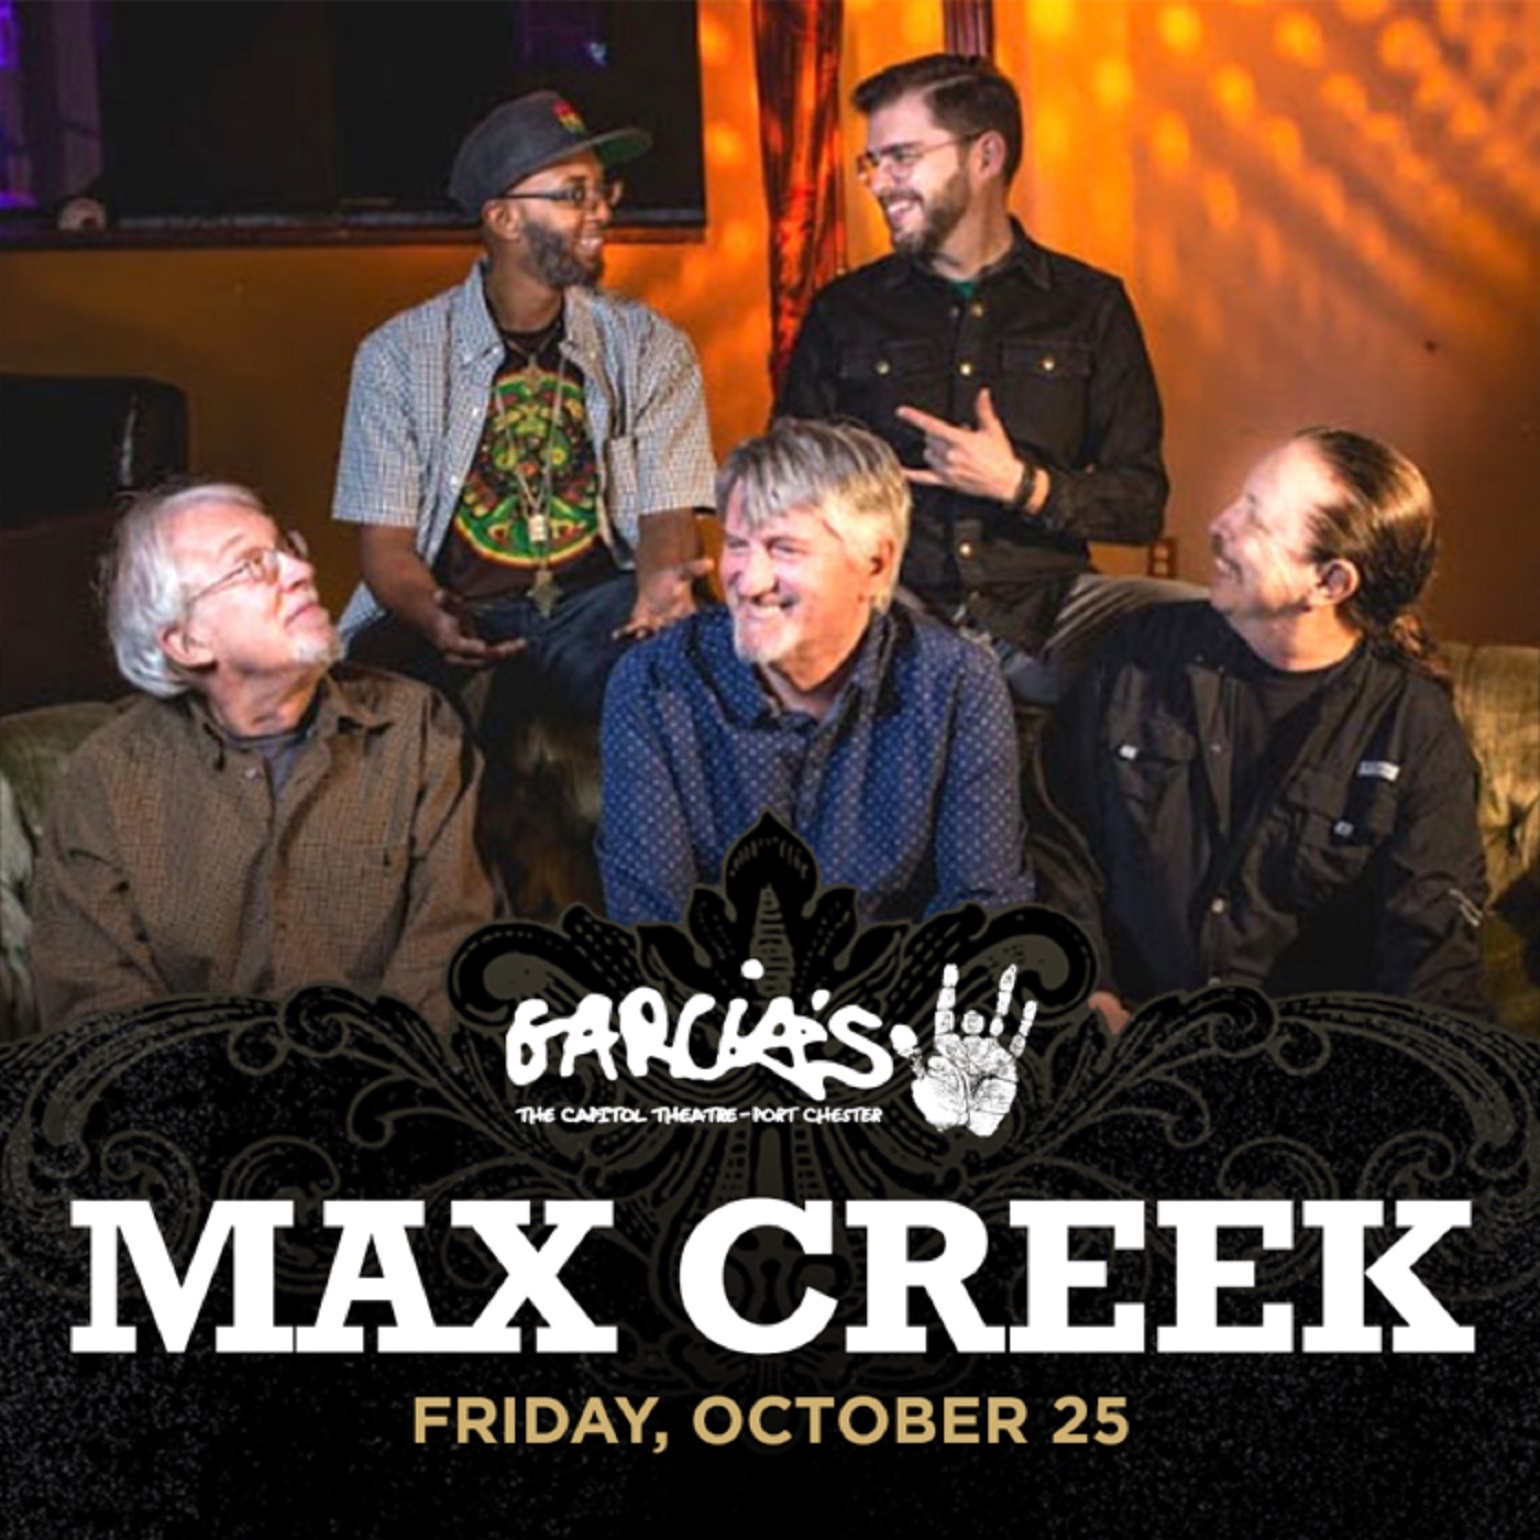 Max Creek Plays Garcia's on Friday, OCT 25